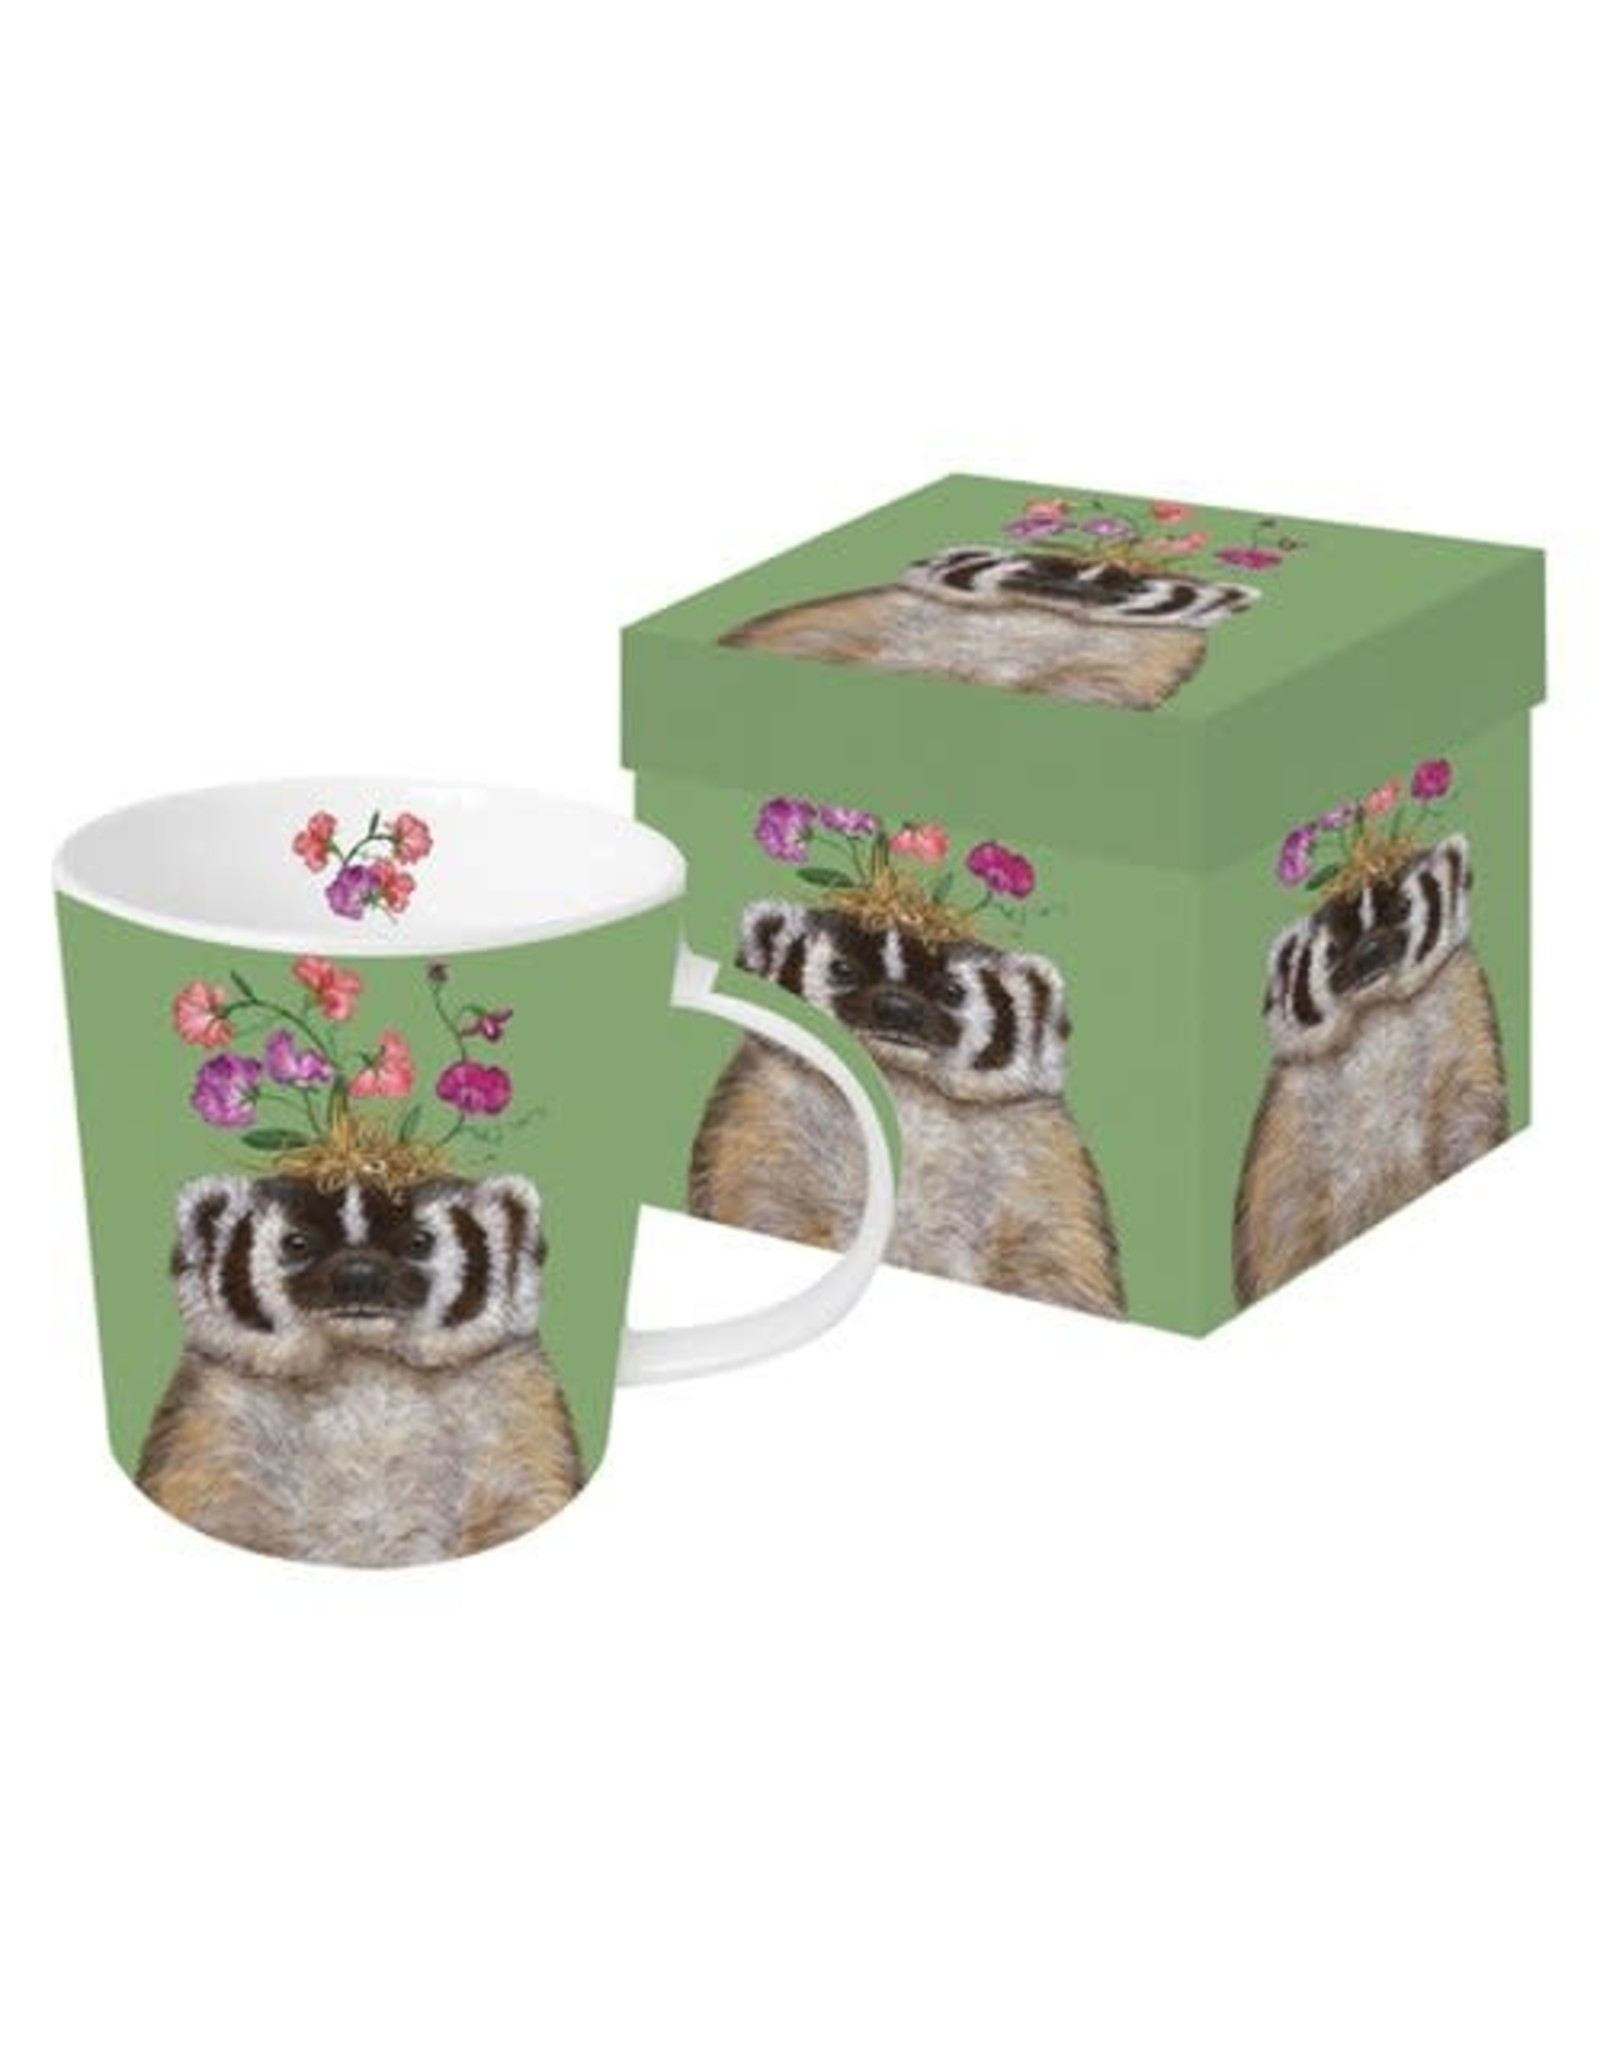 Paper Products Designs SWEET PEA MUG IN A BOX